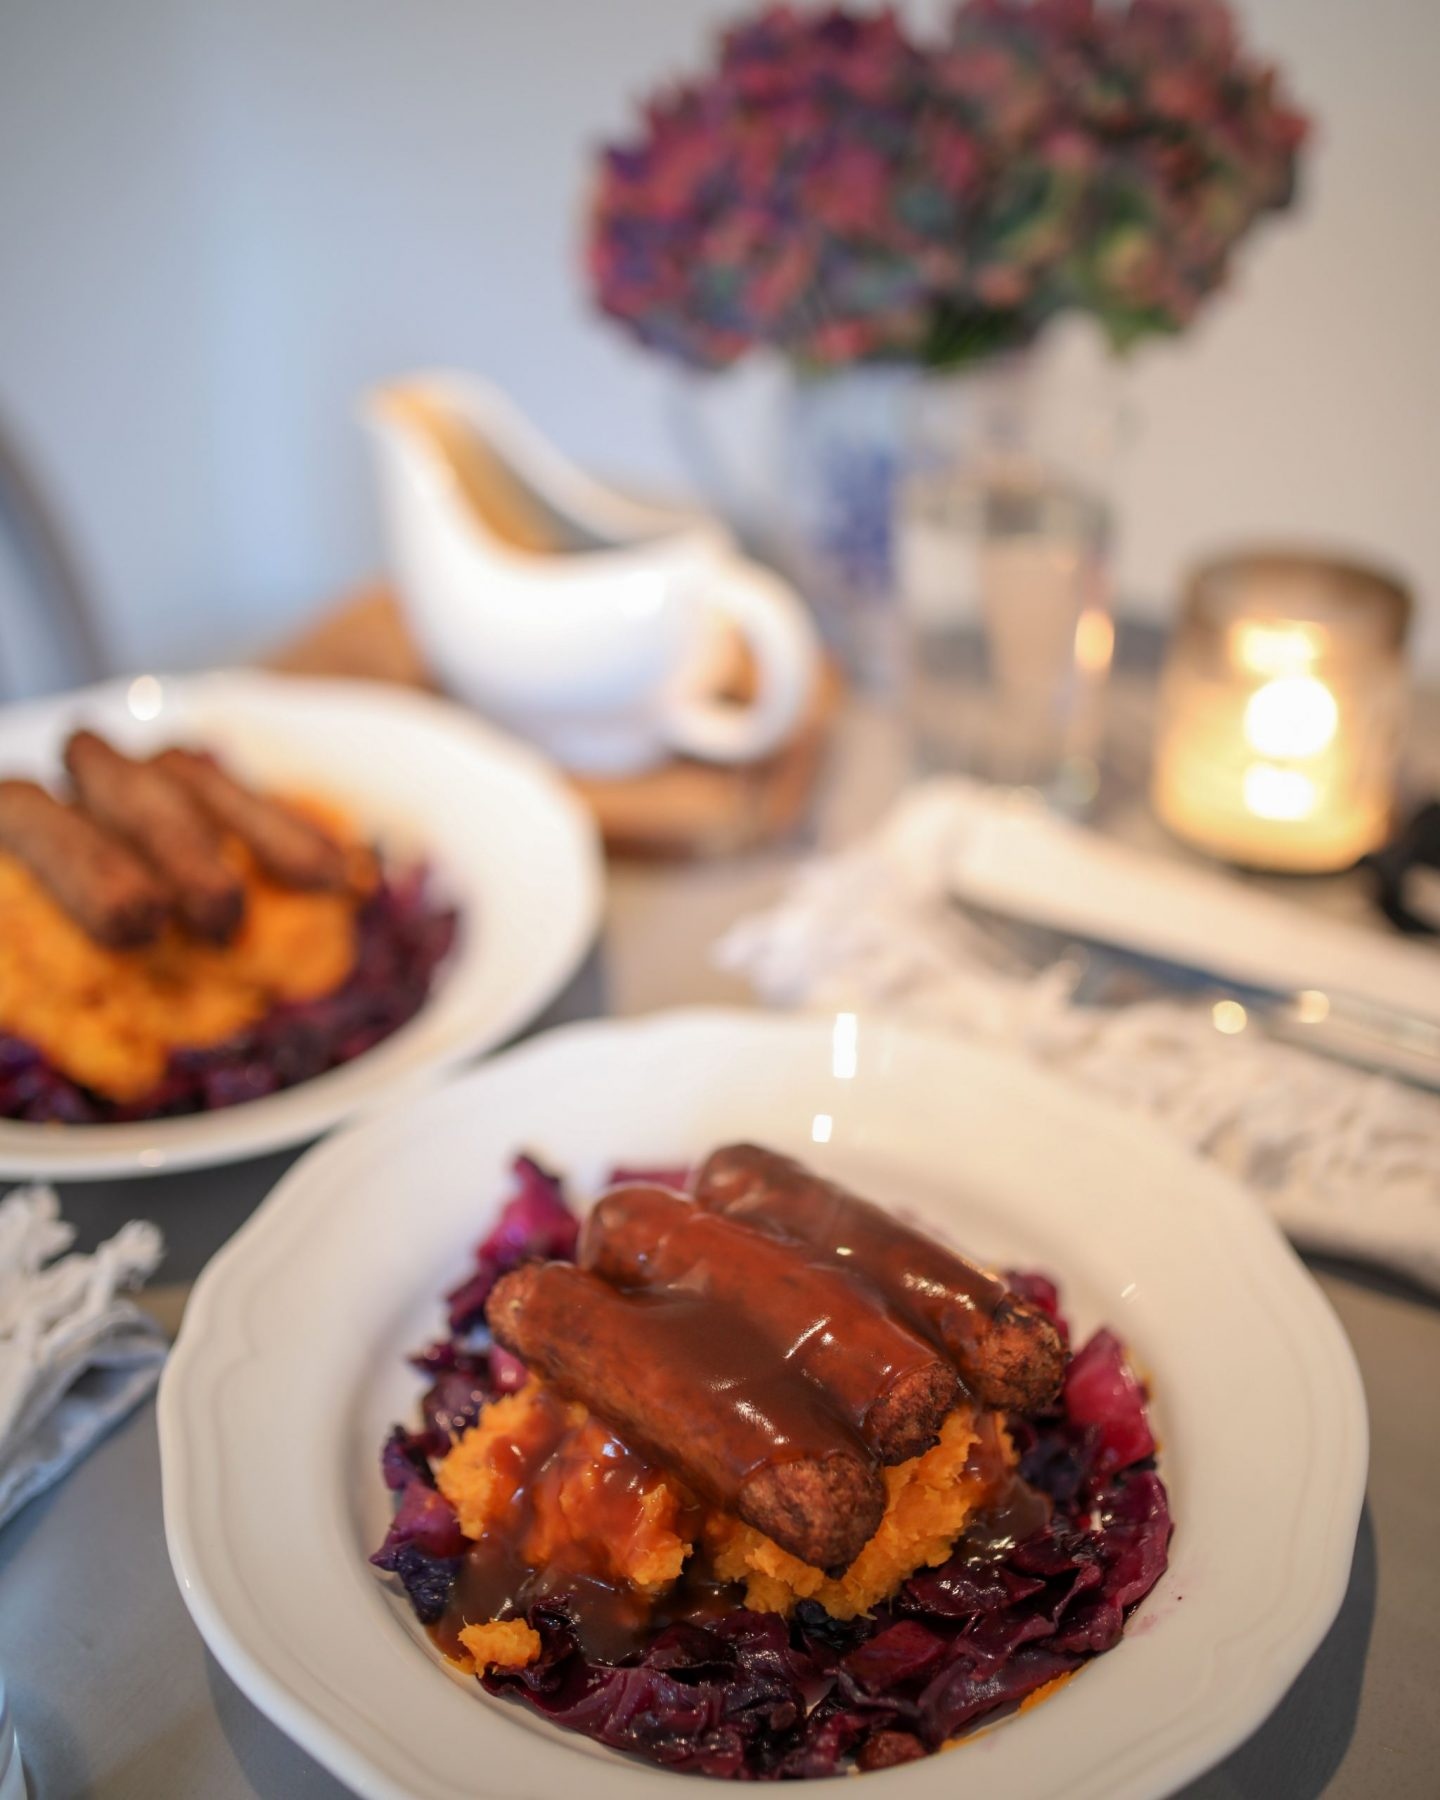 Posh Vegan Bangers and Mash, Katie Heath, KALANCHOE